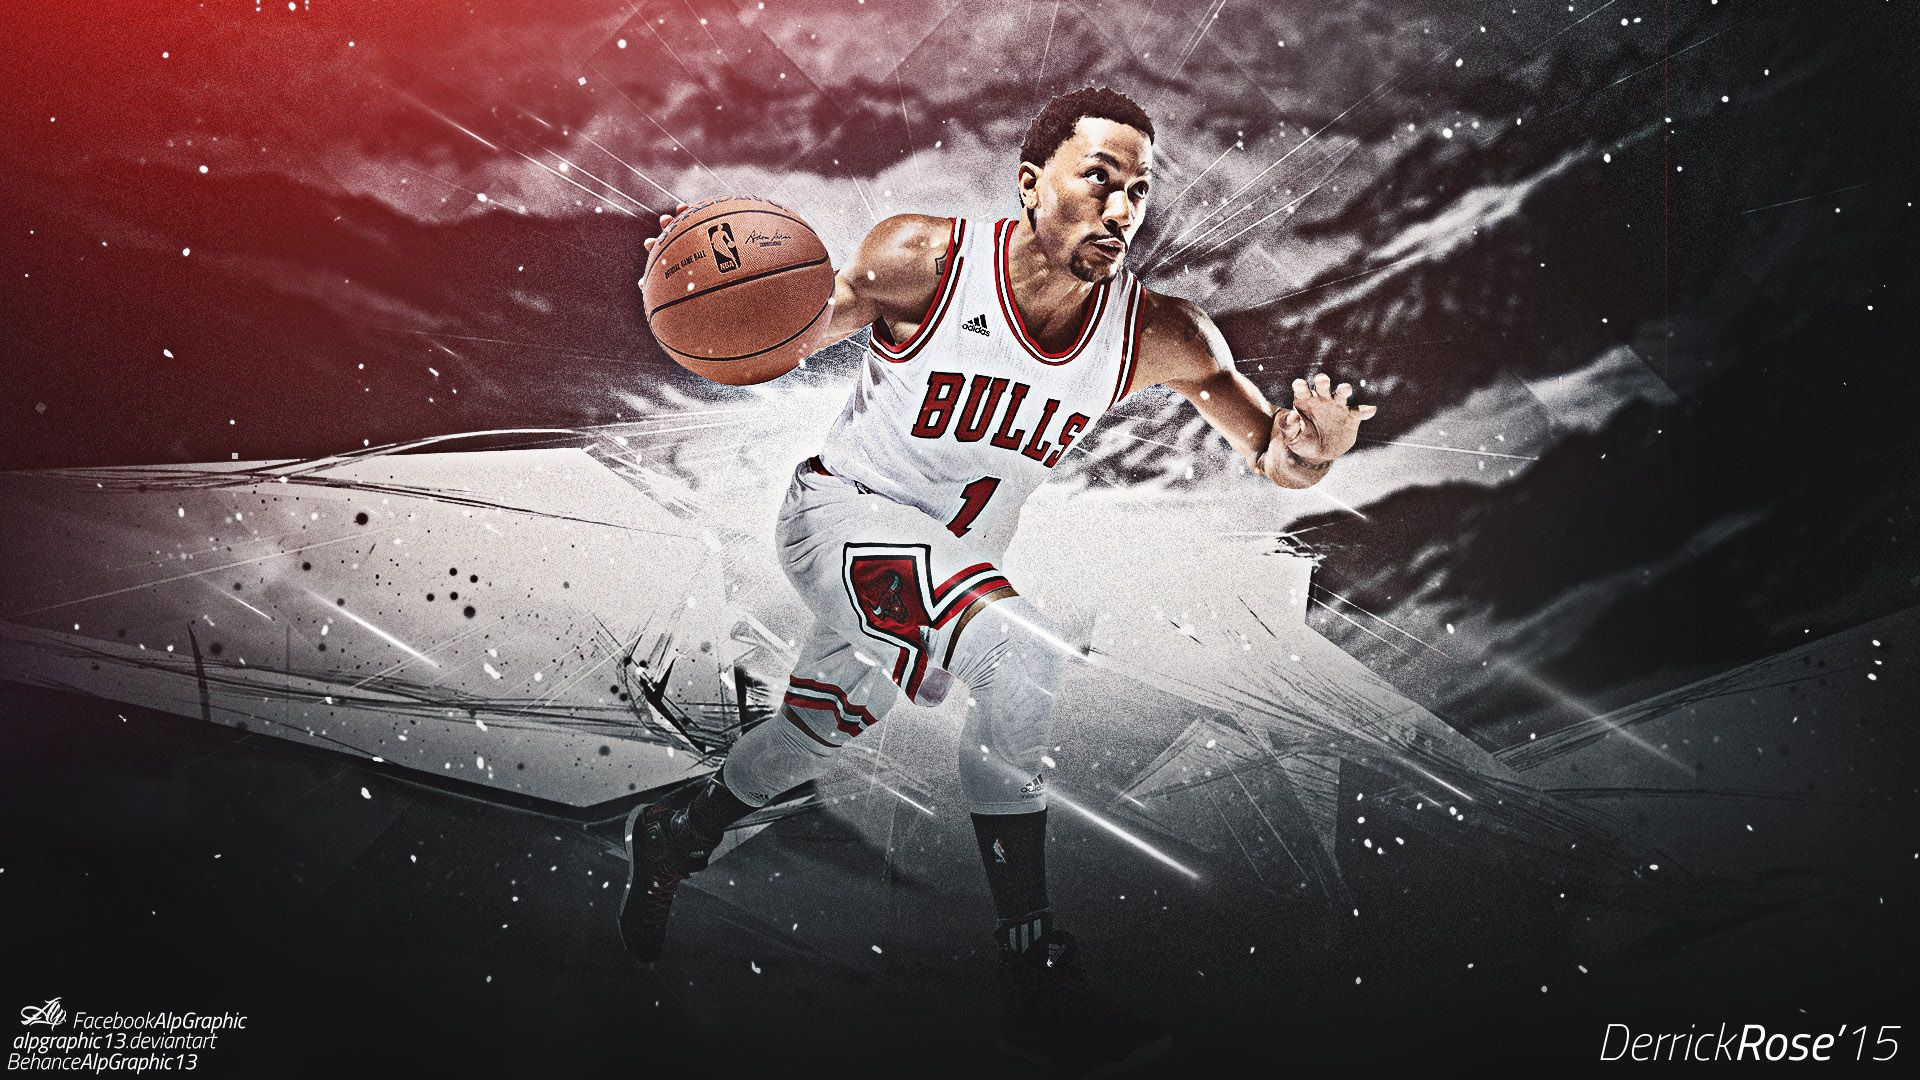 Derrick Rose Wallpapers 2015 HD 1920x1080